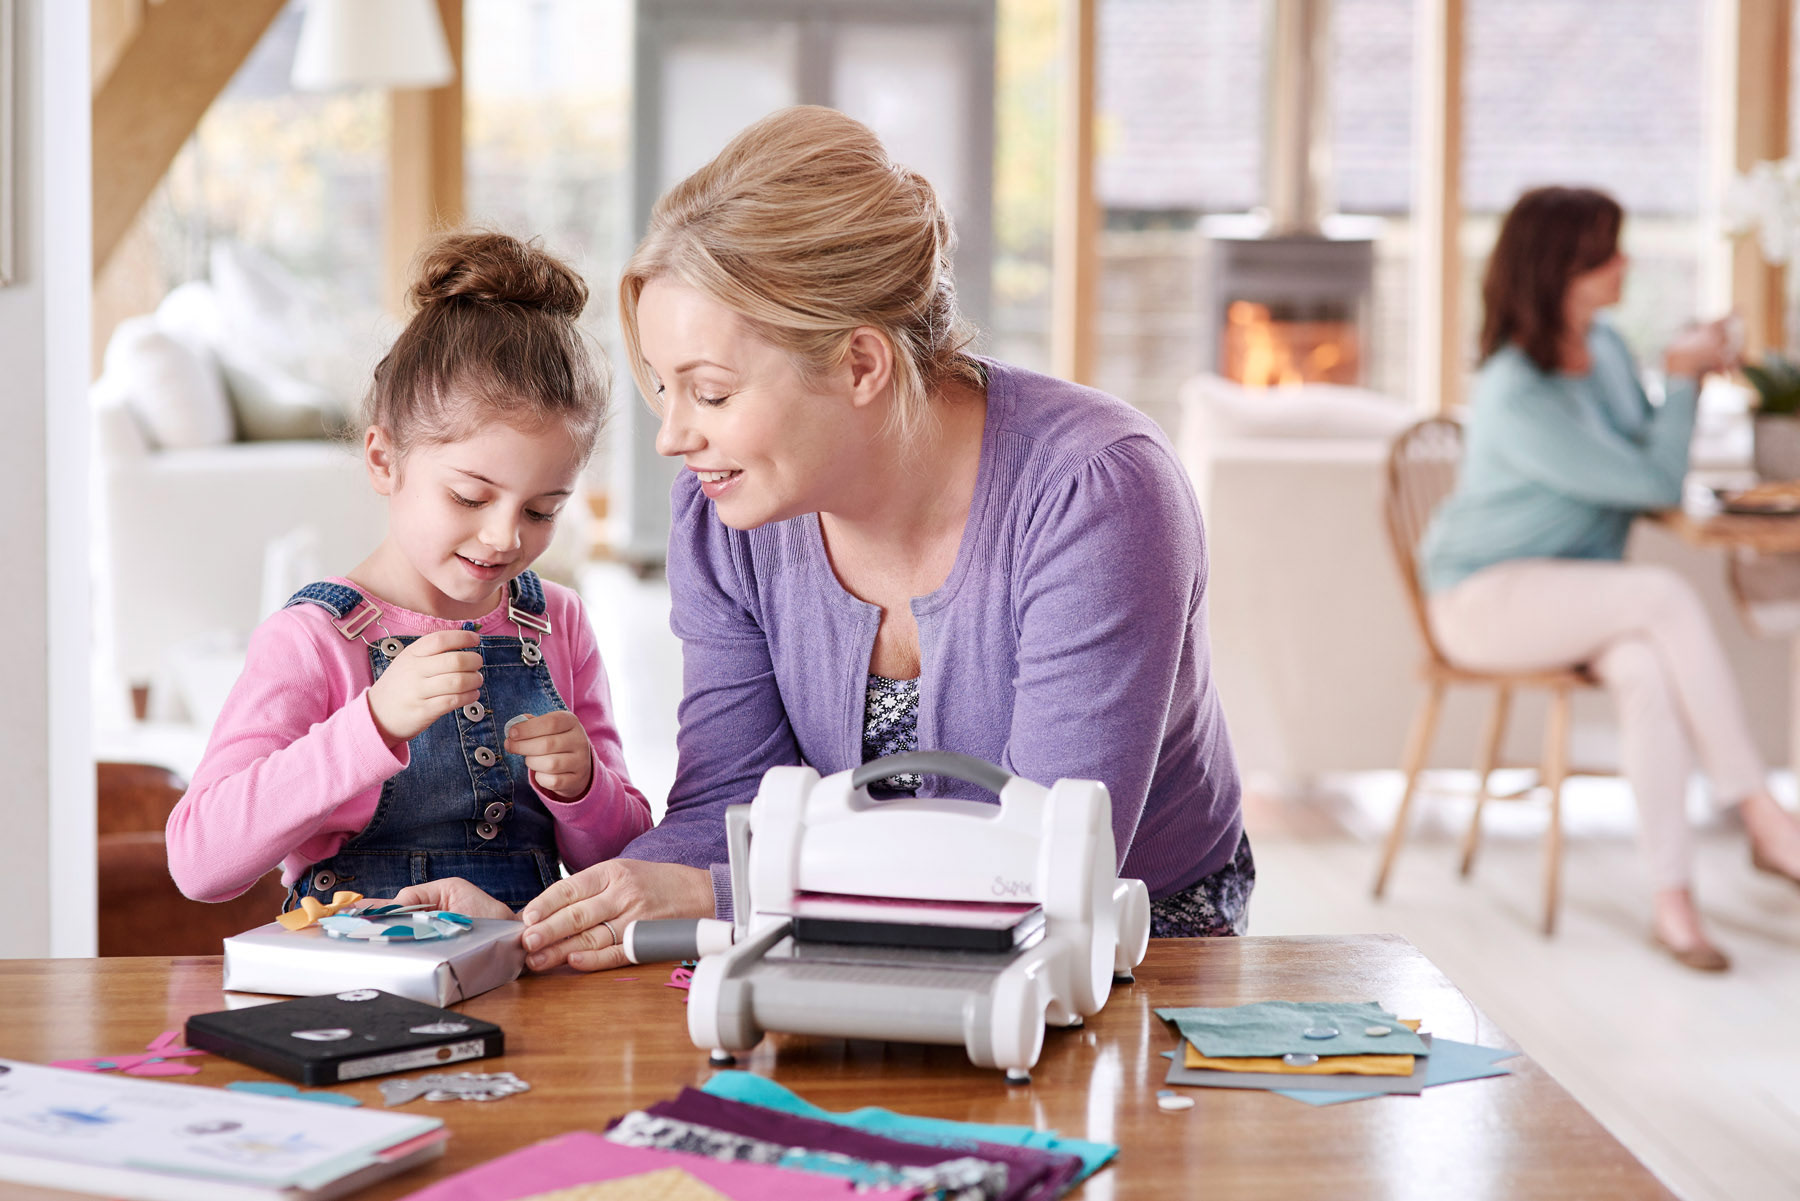 A mum and her daughter crafting at the kitchen table